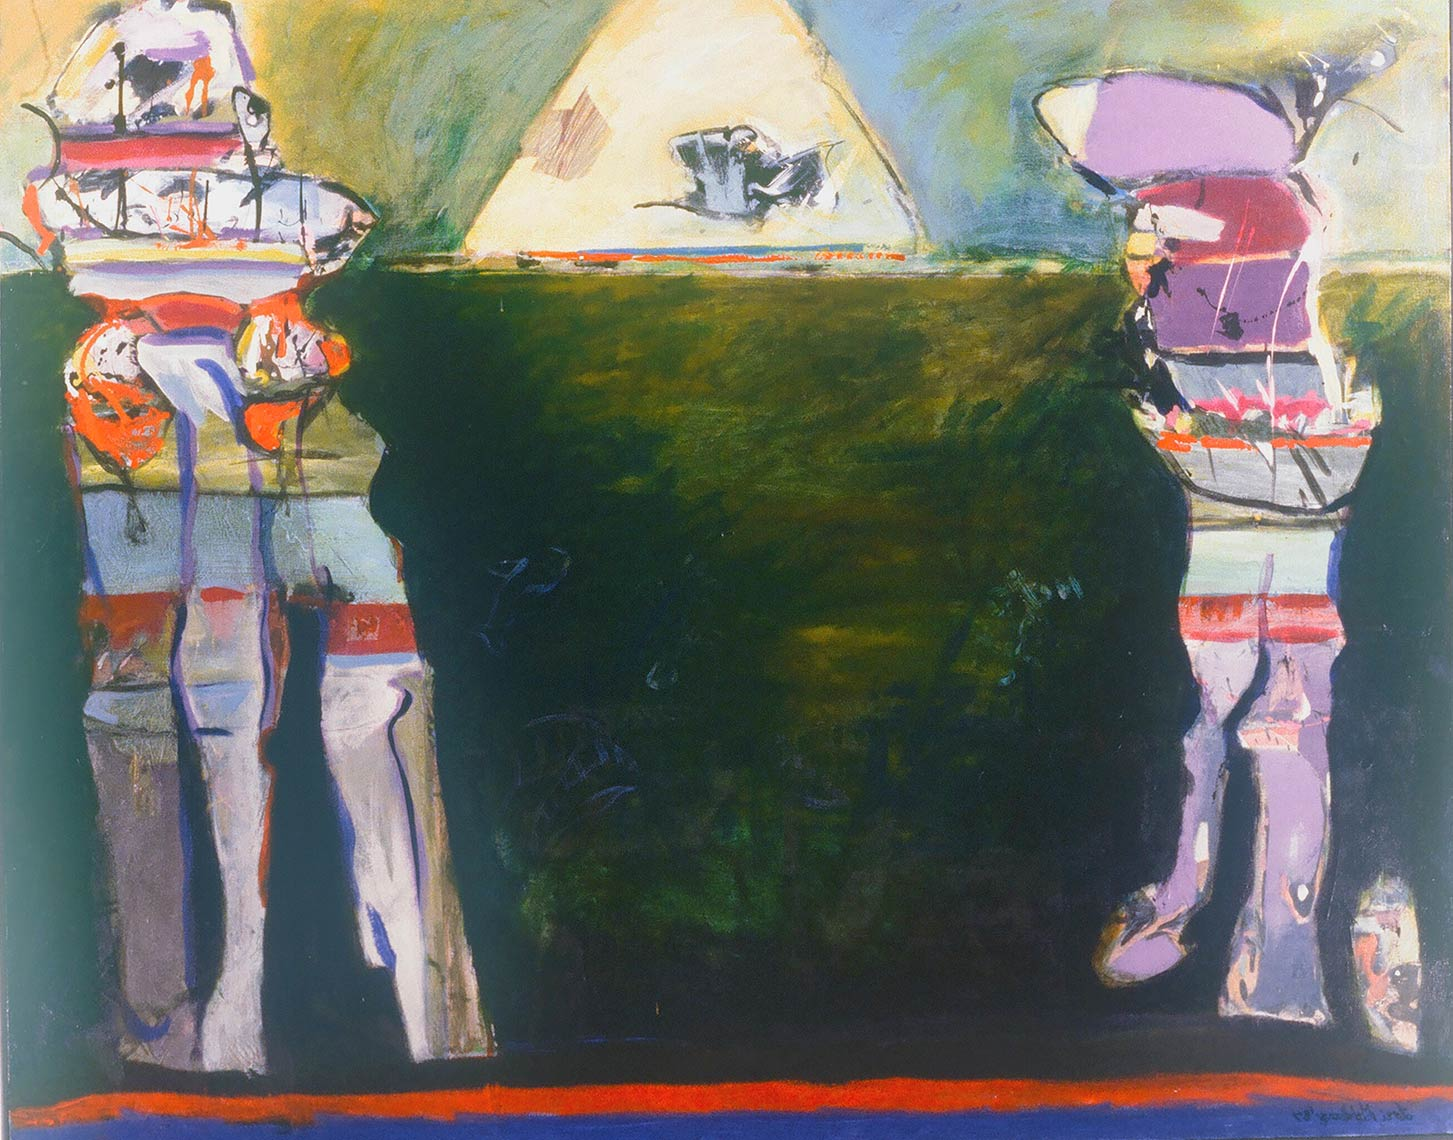 Rites-of-Passage-1986-Acrylic-on-Canvas-60-x-72